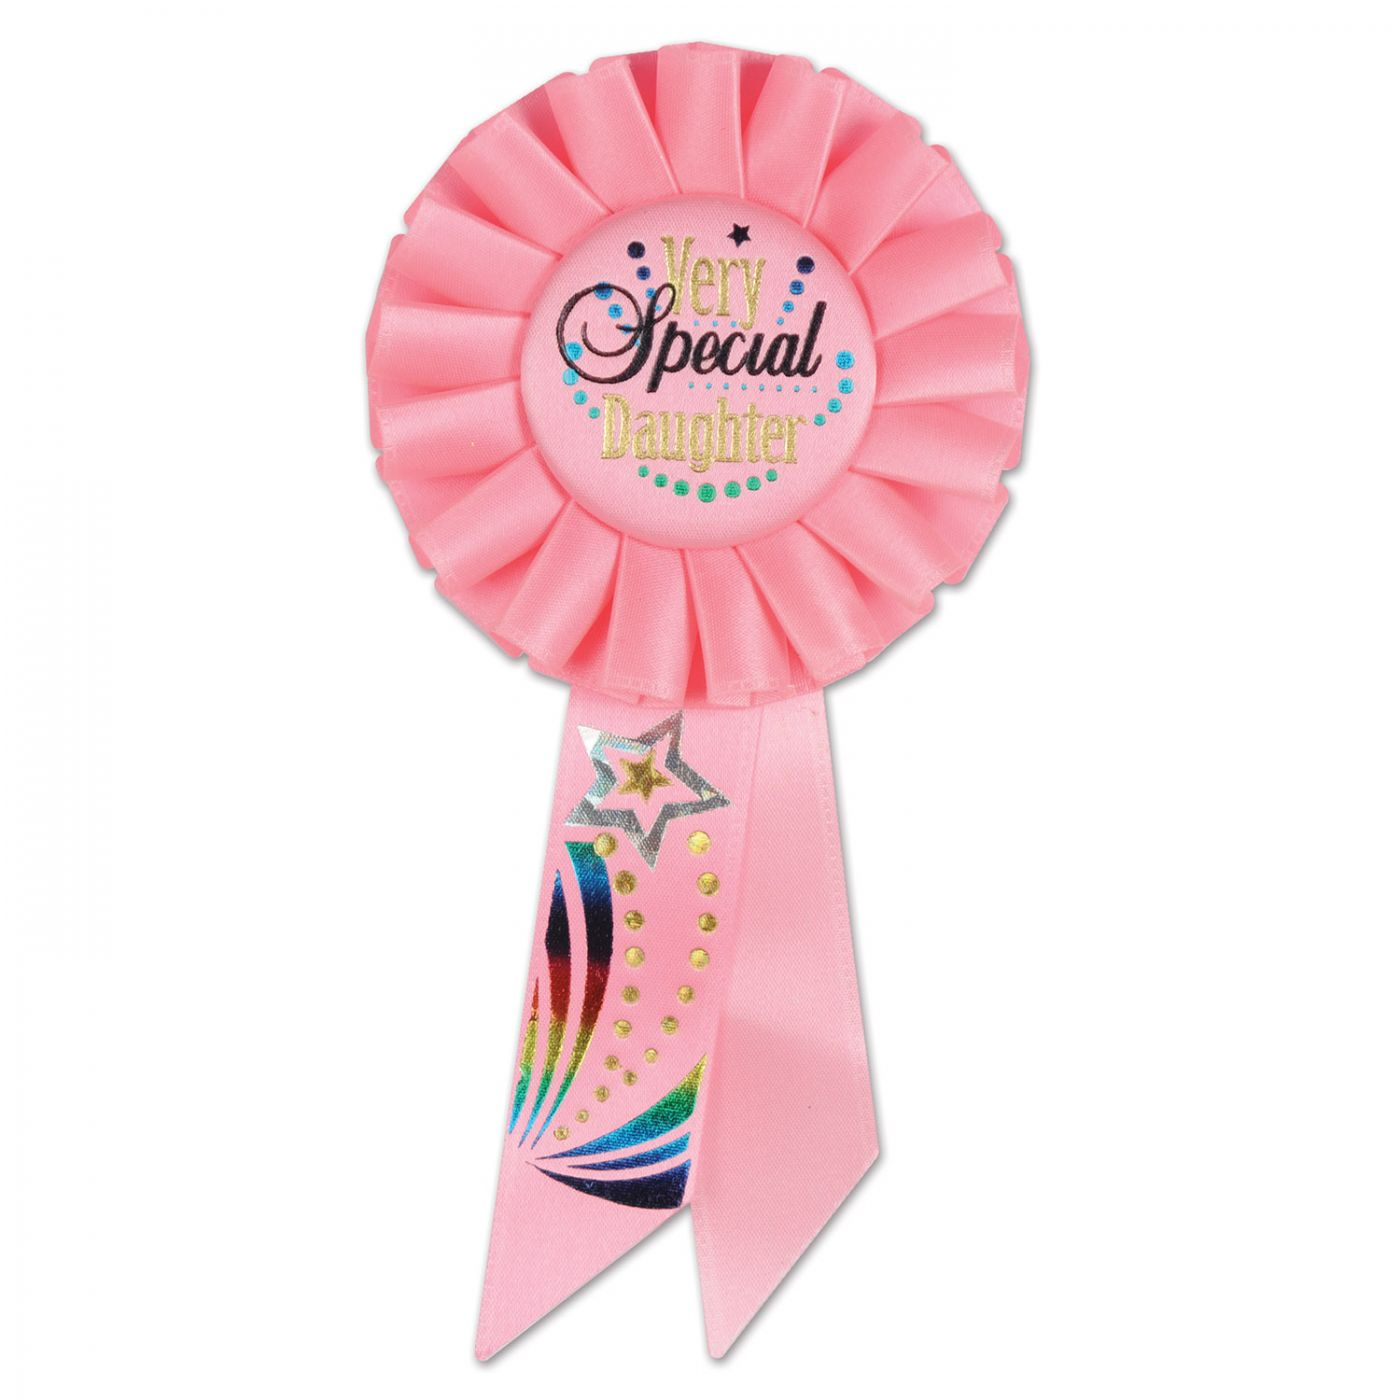 Very Special Daughter Rosette (6) image